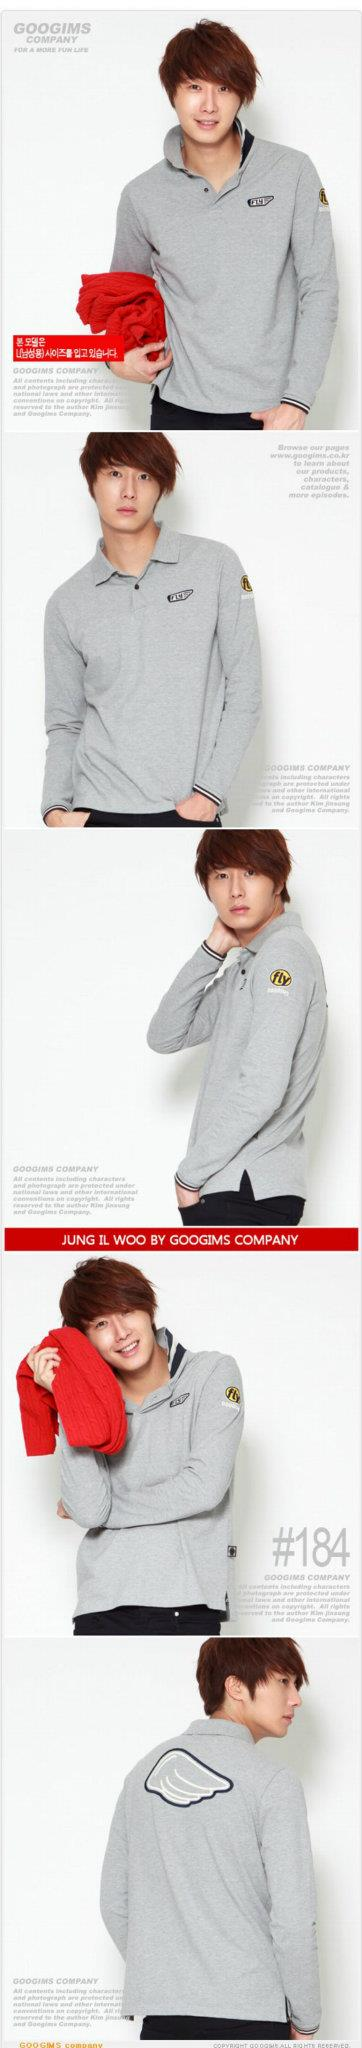 2011 10 Jung II-woo for Googims. Part 100046